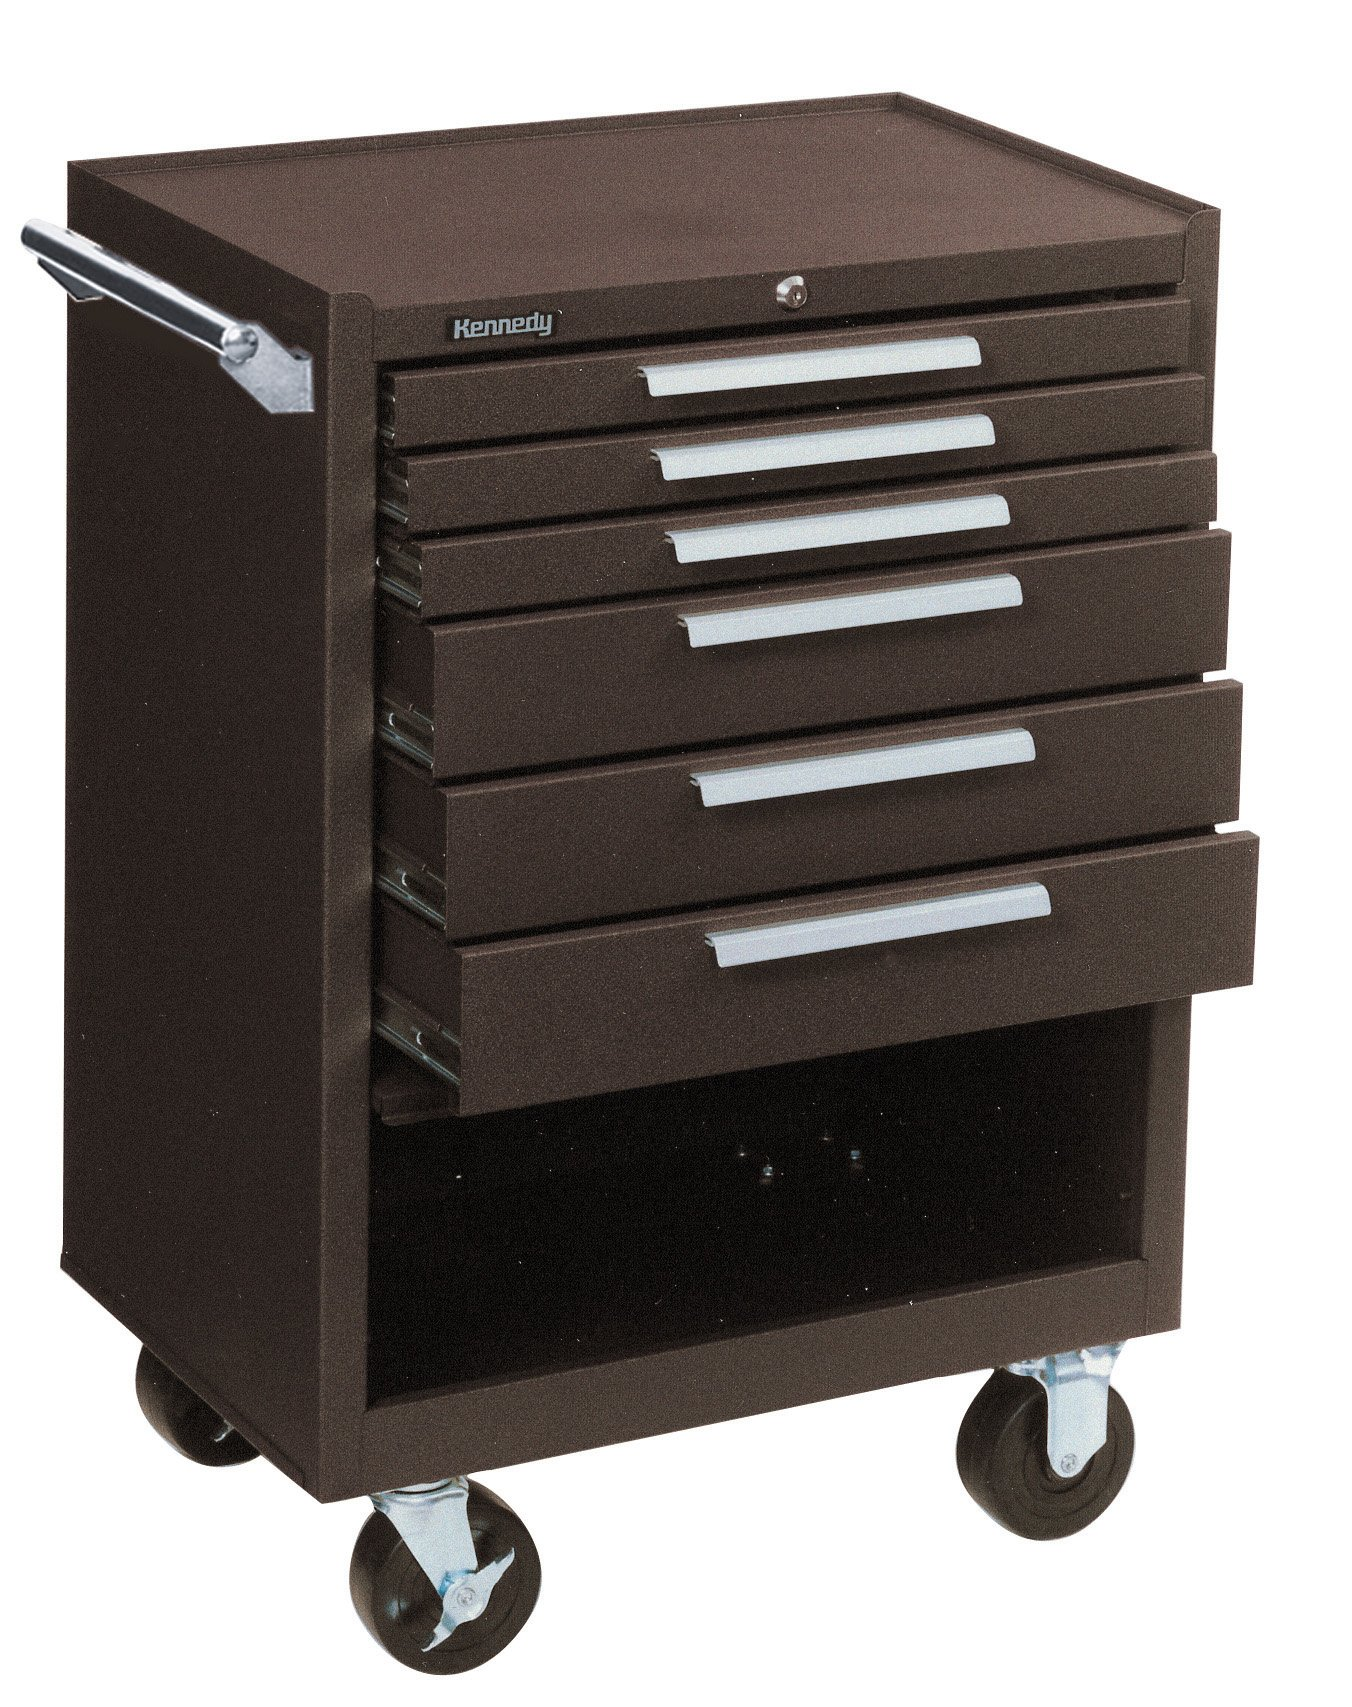 Kennedy Manufacturing 378Xr 27'' 8-Drawer Industrial Tool Storage Roller Cabinet With Chest And Wheels, Industrial Red